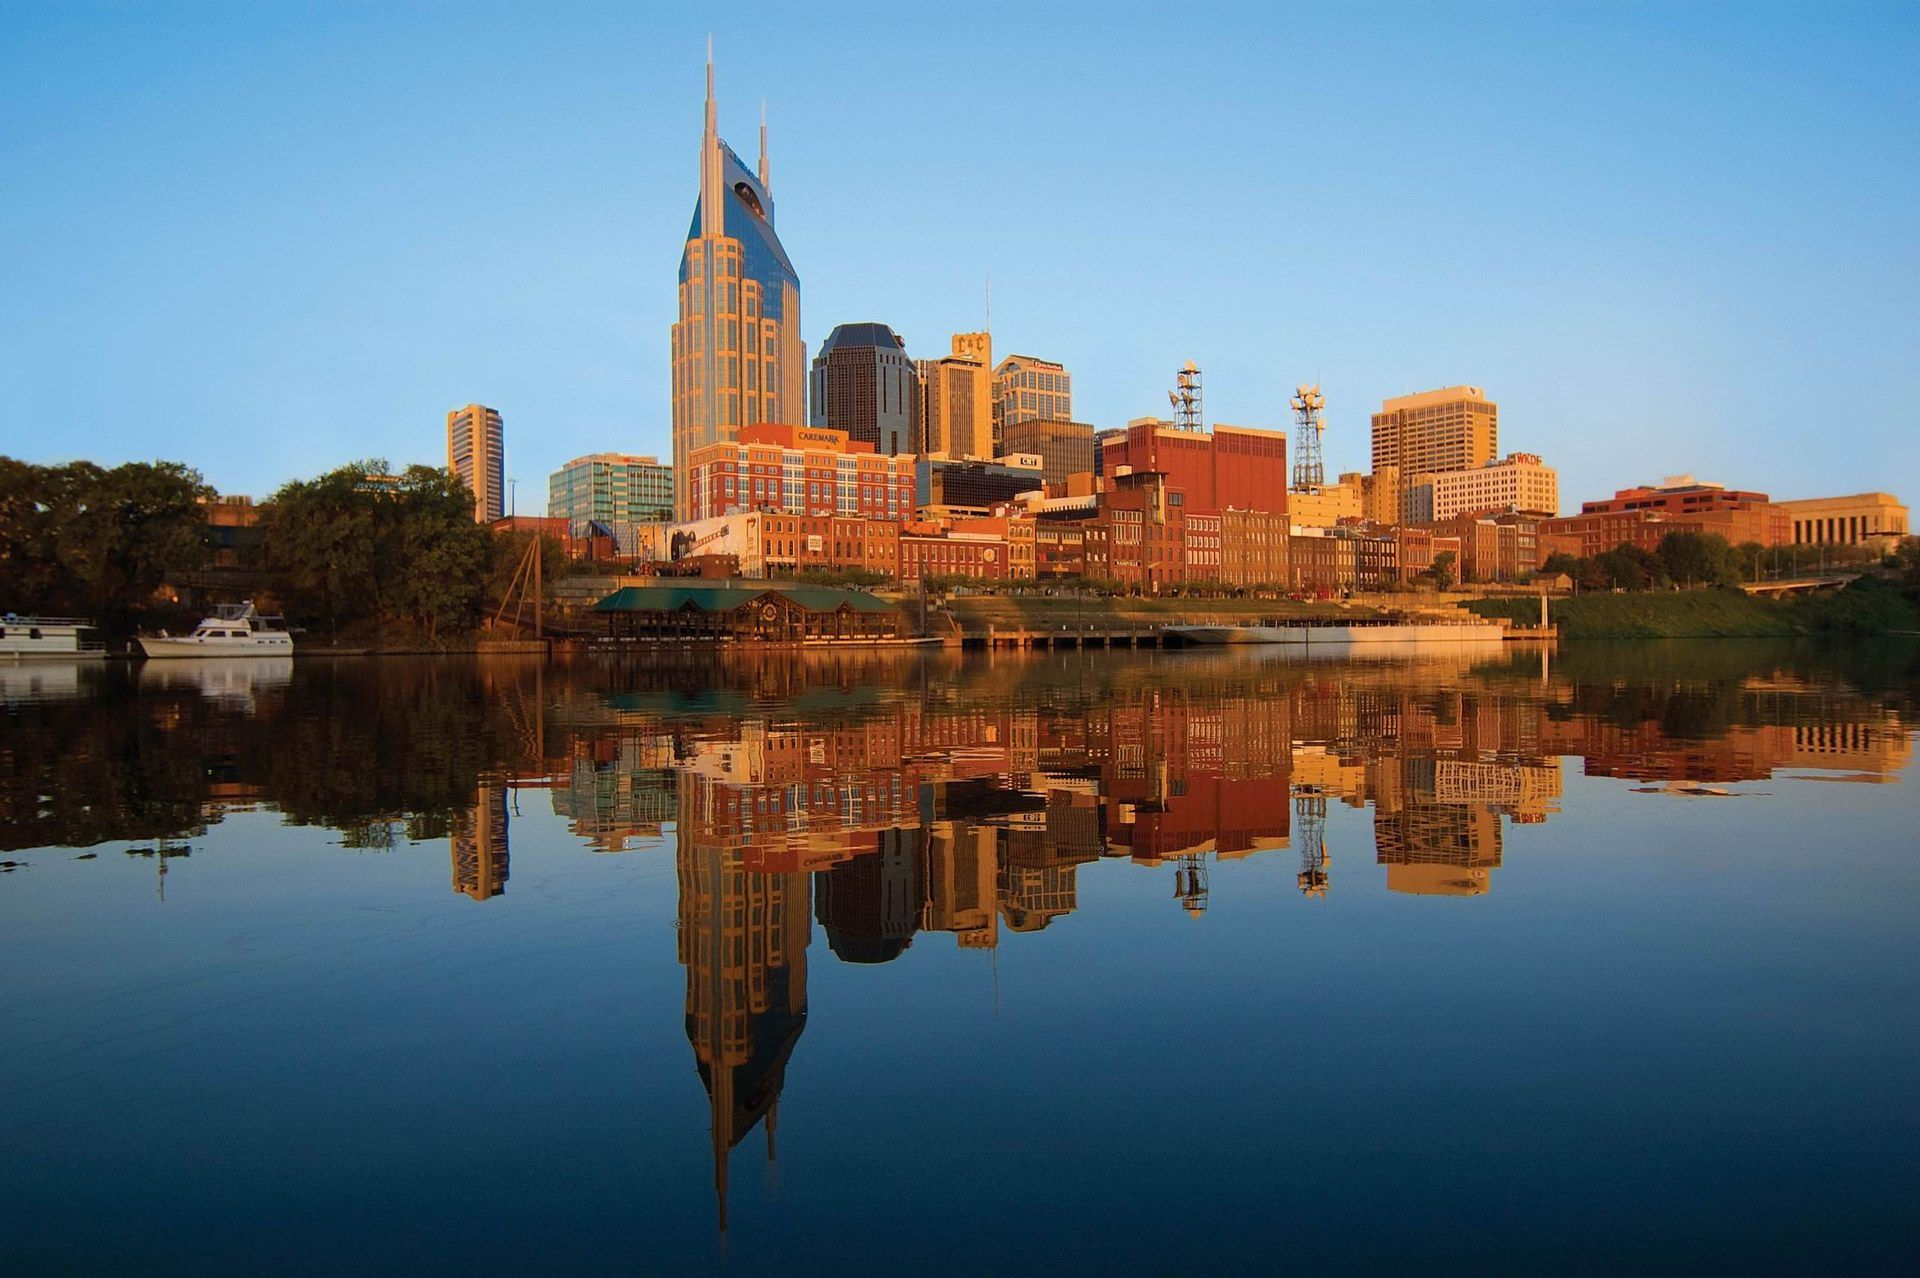 nashville pics | nashville,tennessee, america - hd travel photos and